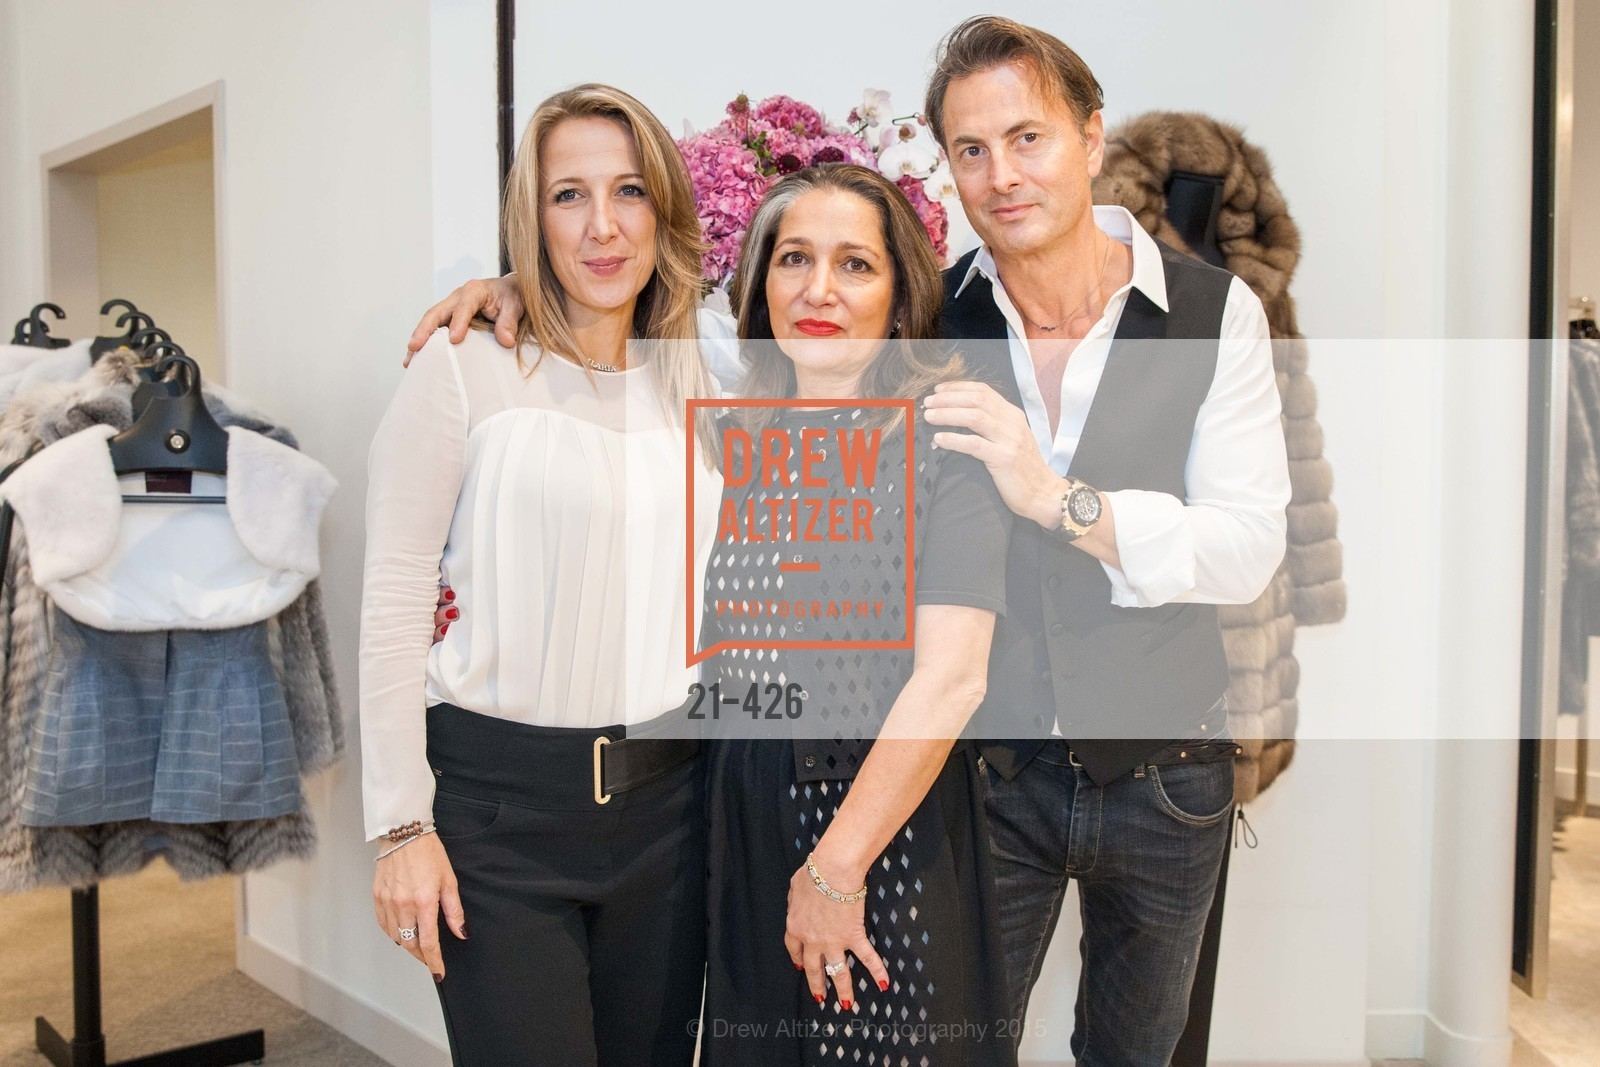 Ilaria Fabbri, Josephine Kathan, Brunello Rindi, Rindi at Saks Fur Salon, Saks Fifth Avenue, Fur Salon, October 29th, 2015,Drew Altizer, Drew Altizer Photography, full-service event agency, private events, San Francisco photographer, photographer California